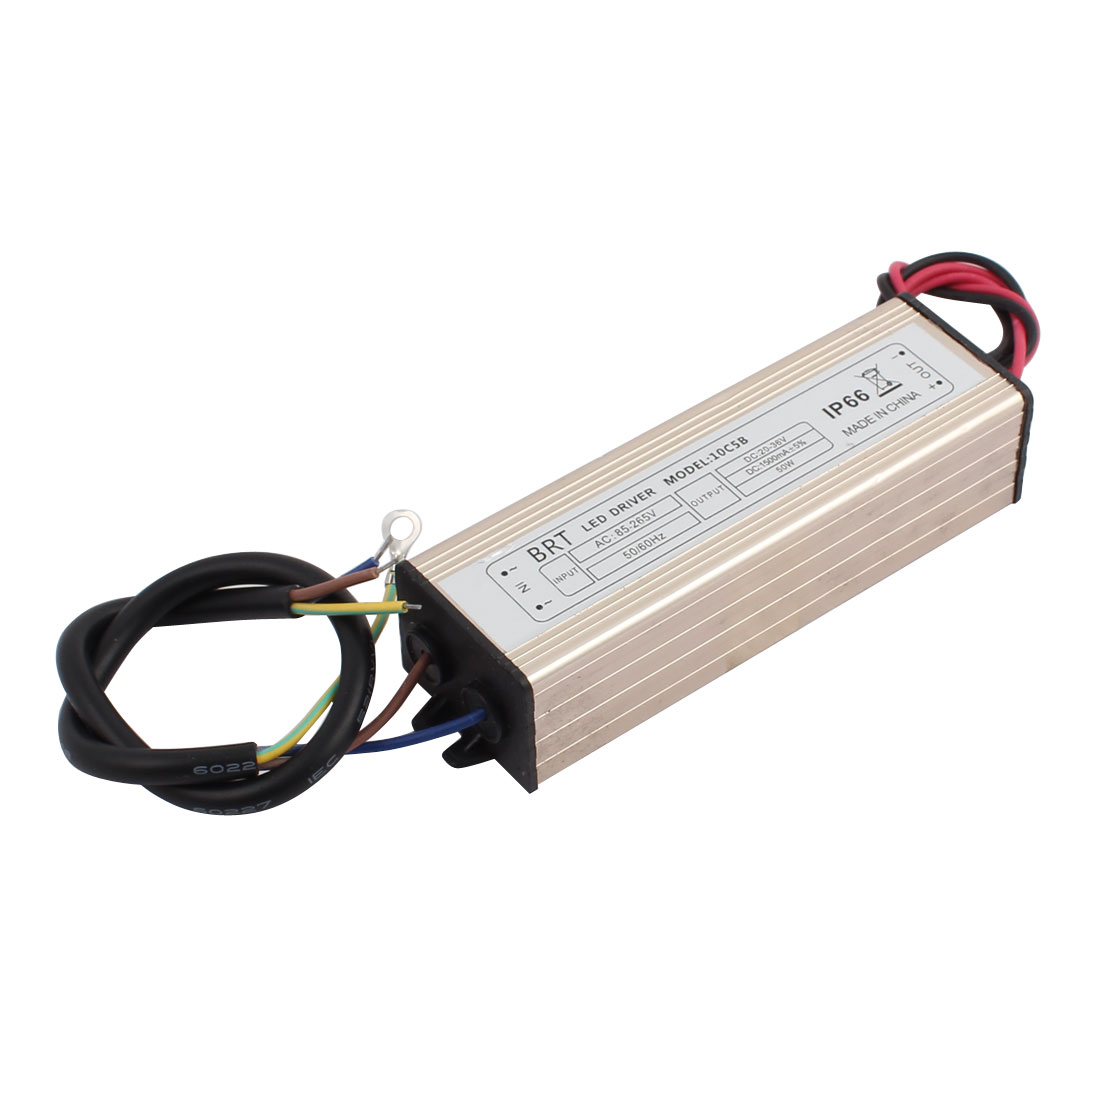 AC85-265V to DC20-36V 1500mA Transformer IP66 Waterproof LED Driver Power Supply